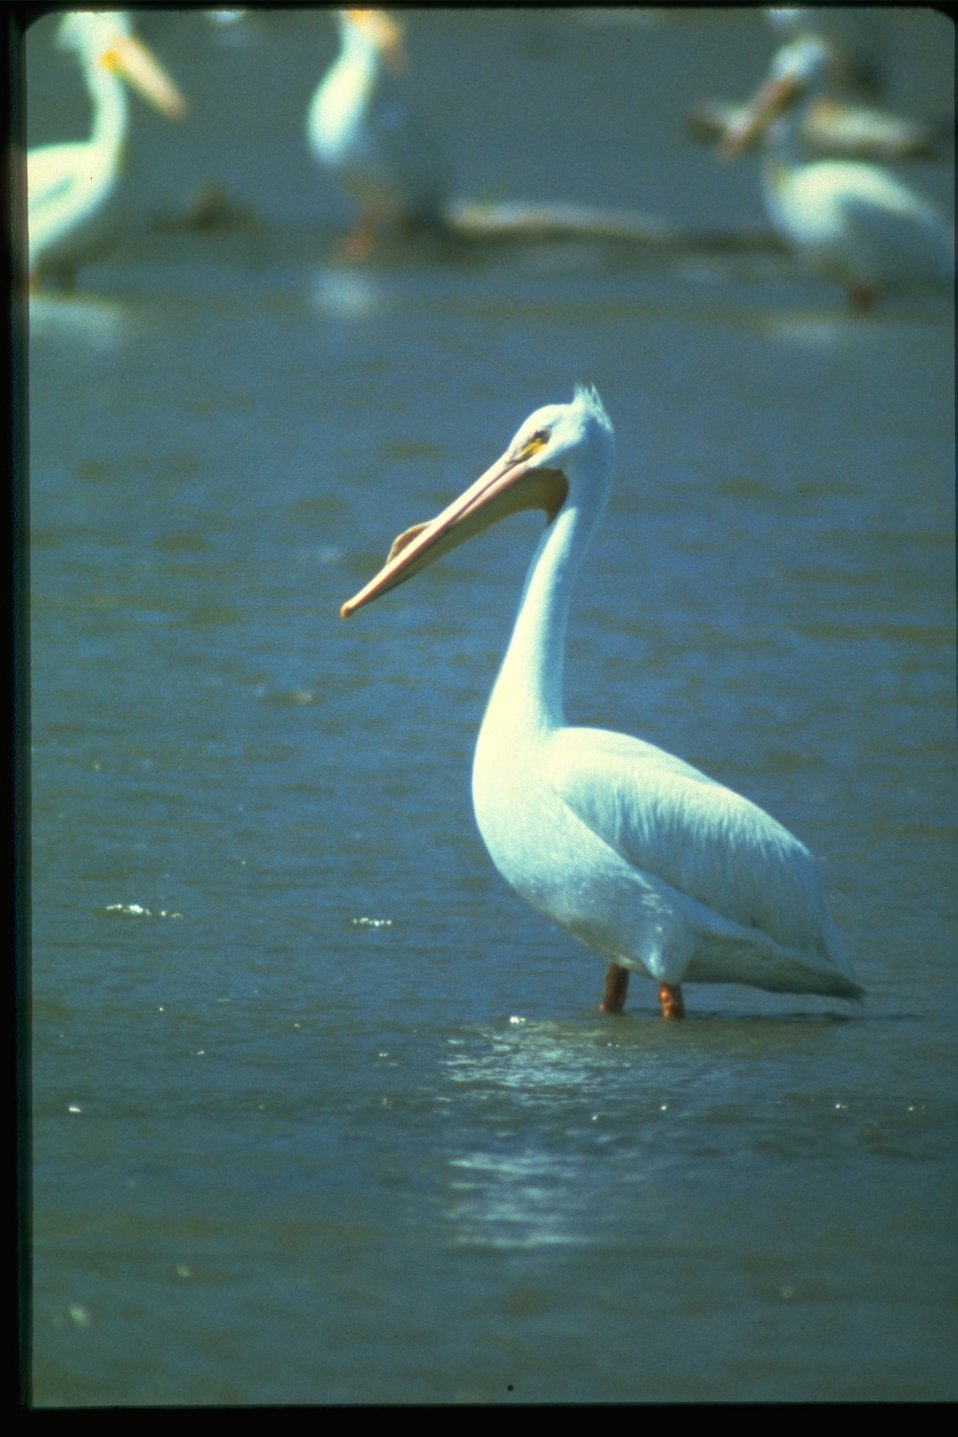 A white Pelican standing in water.